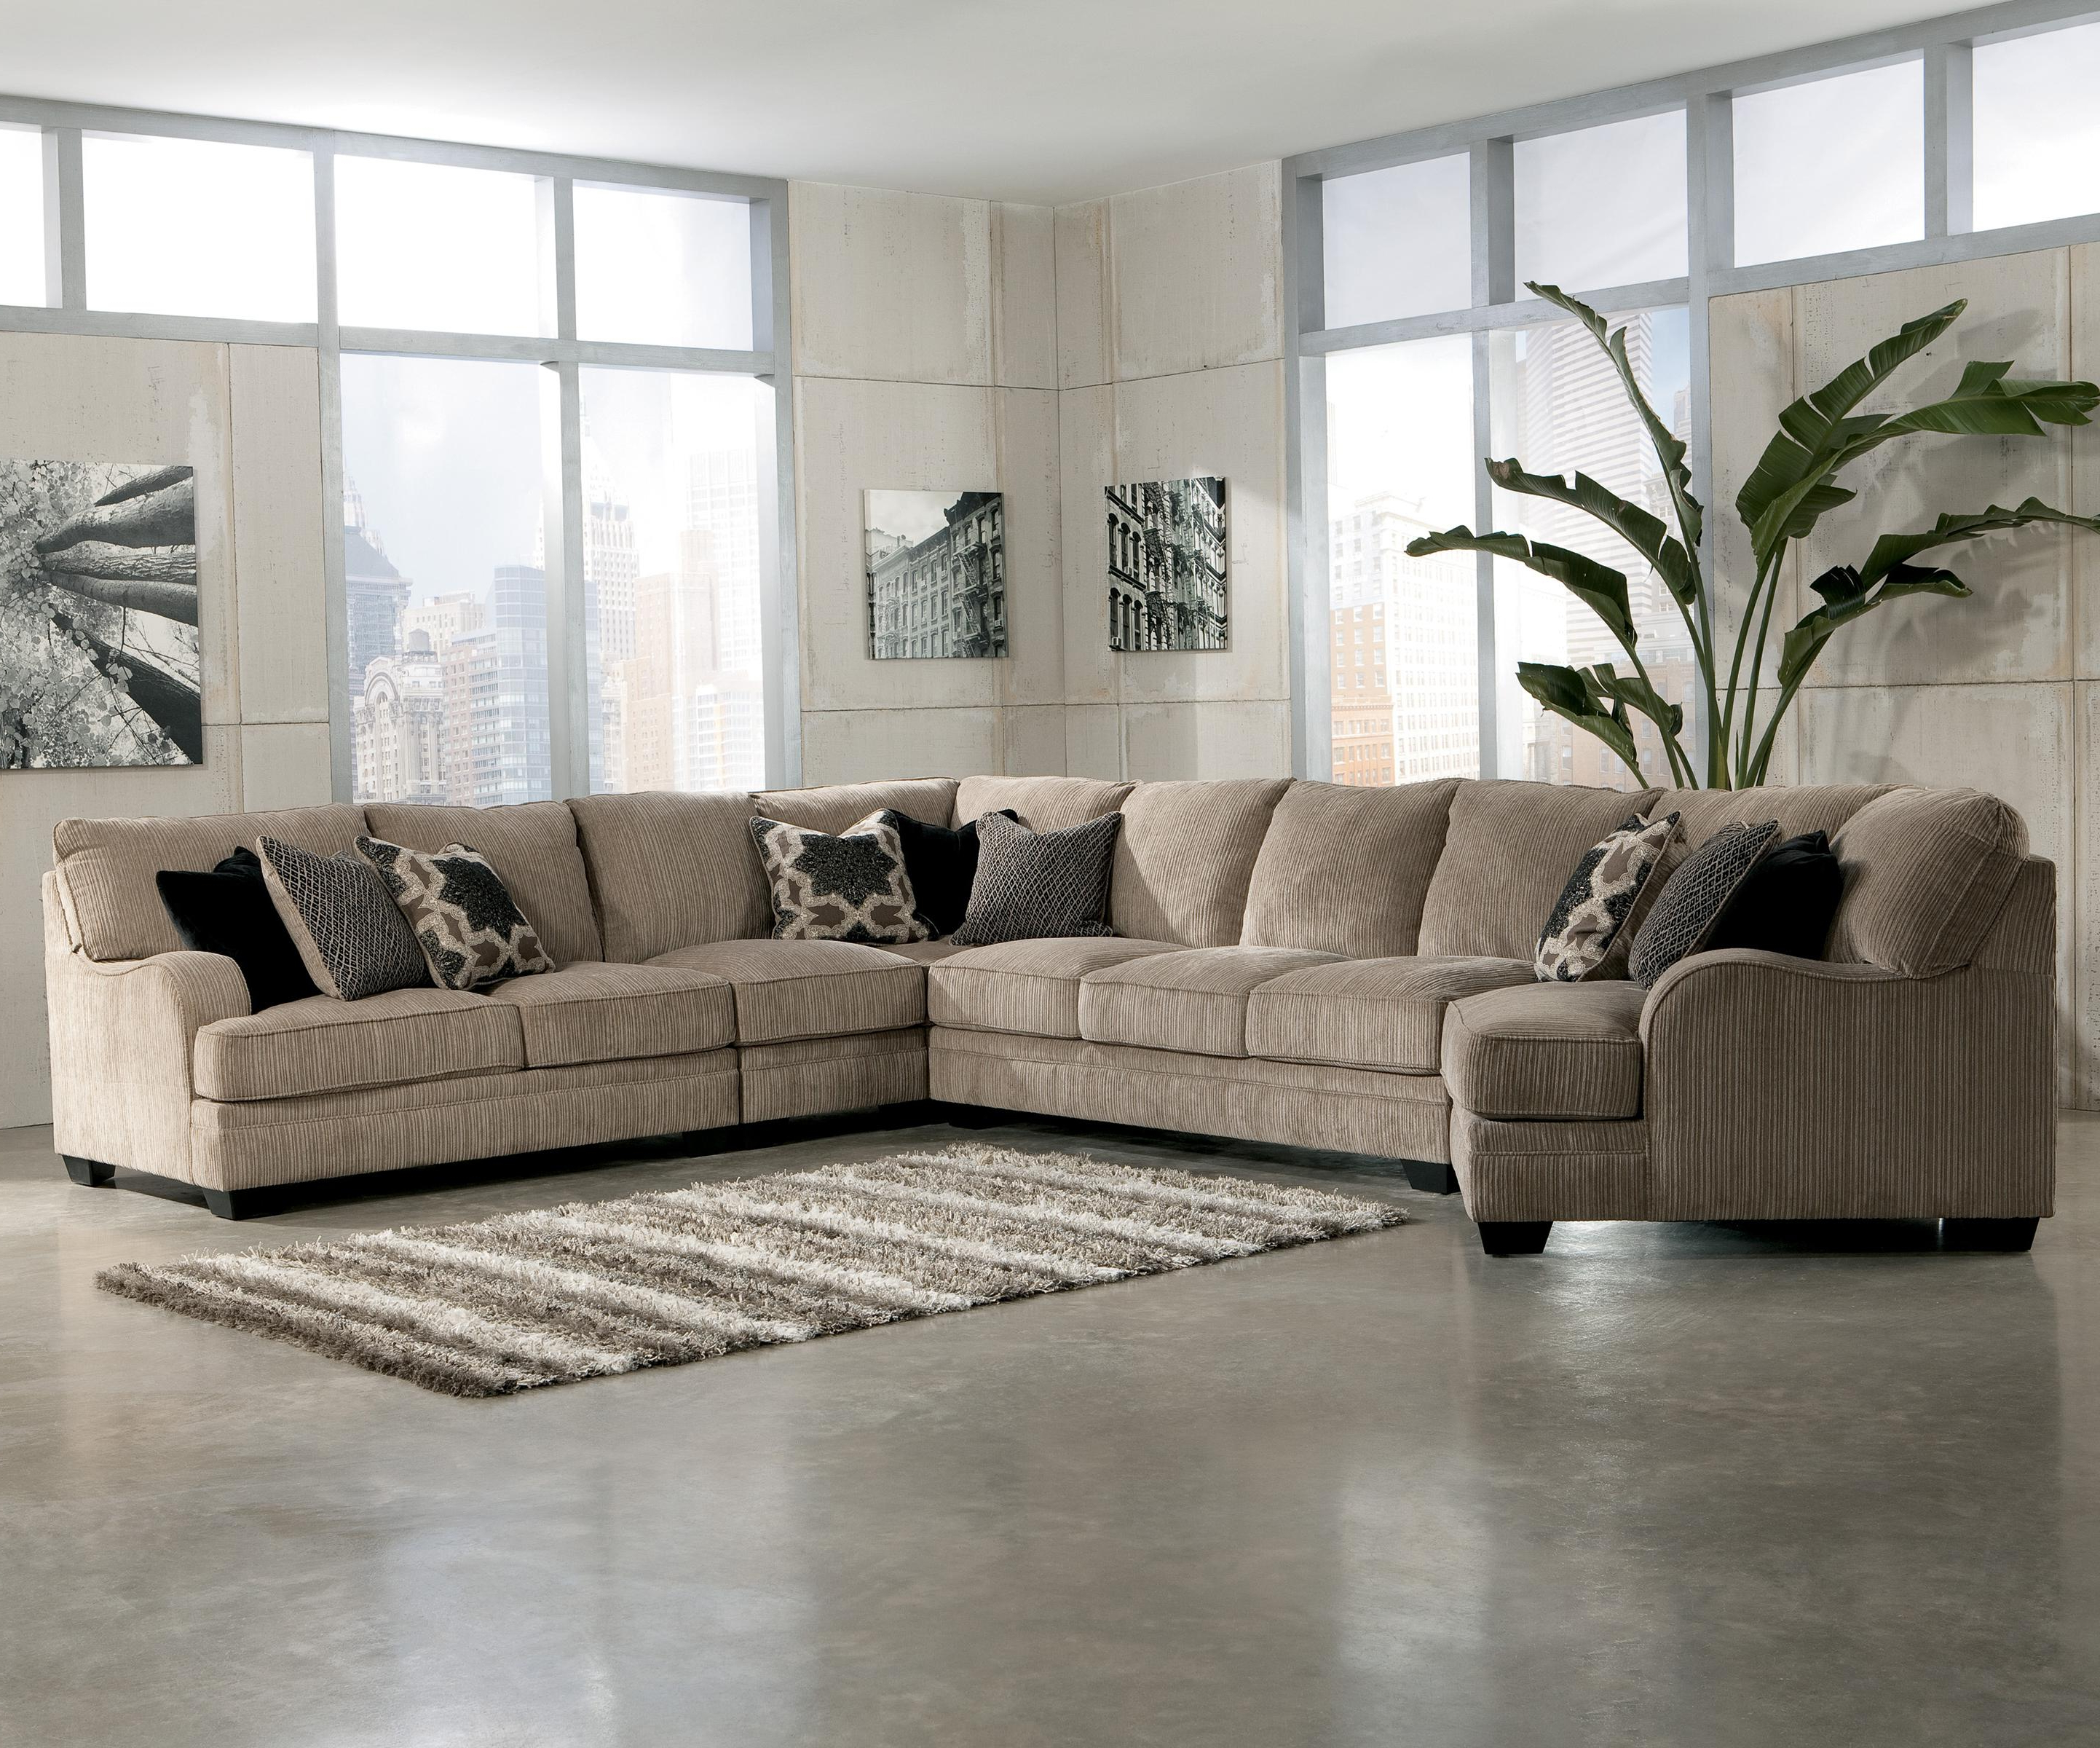 Best And Newest Signature Designashley Katisha – Platinum 5 Piece Sectional Sofa With Regard To Norfolk Grey 3 Piece Sectionals With Laf Chaise (View 4 of 20)